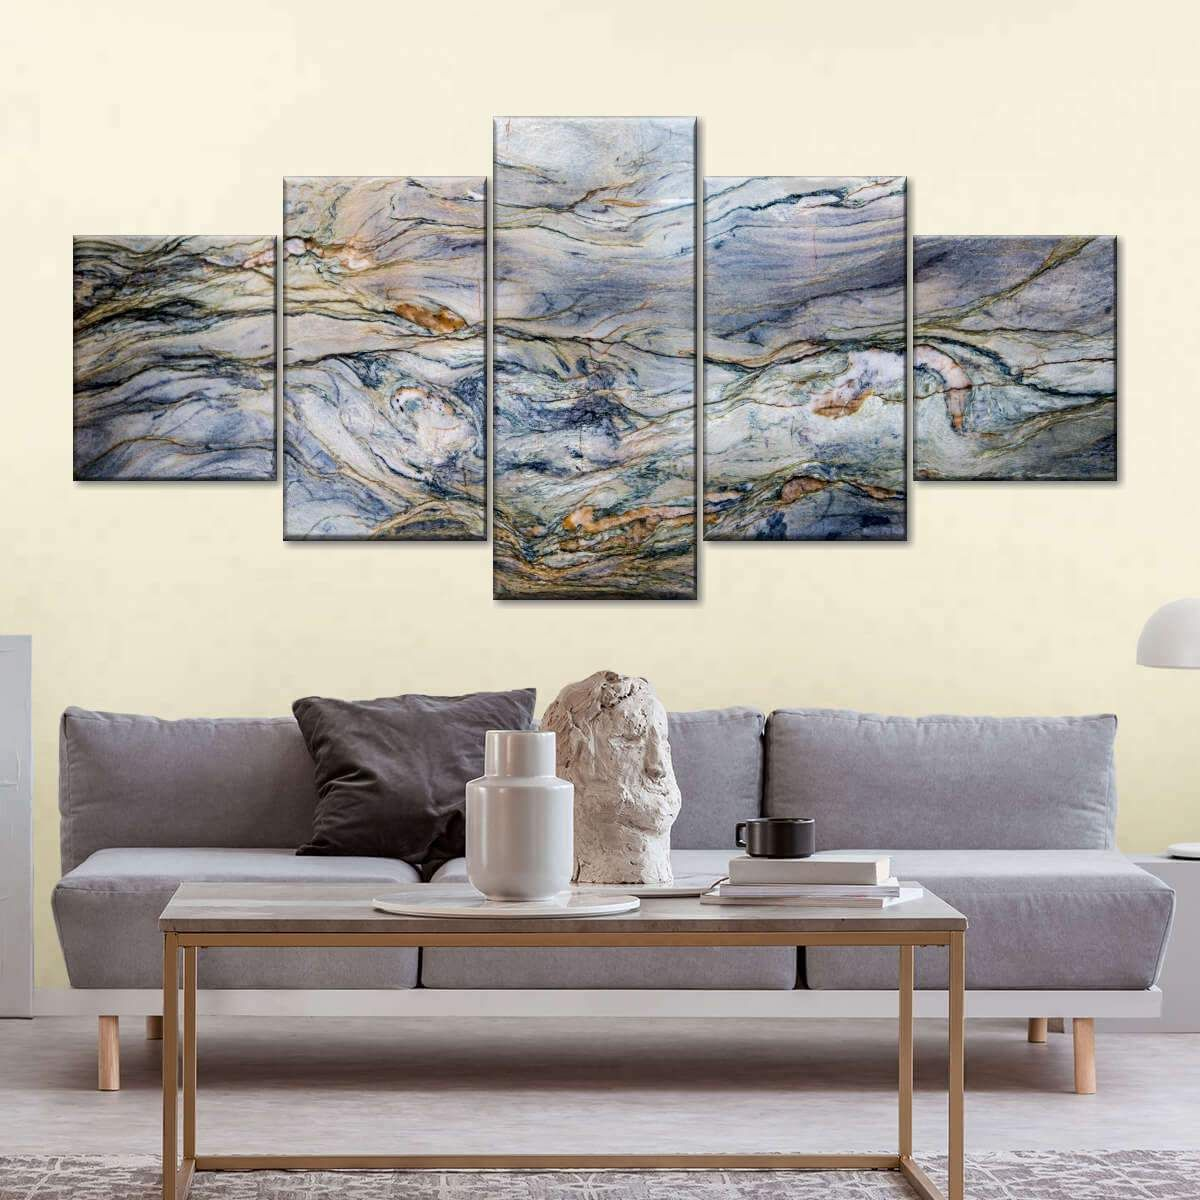 Marble Texture Multi Panel Canvas Wall Art #marbletexture